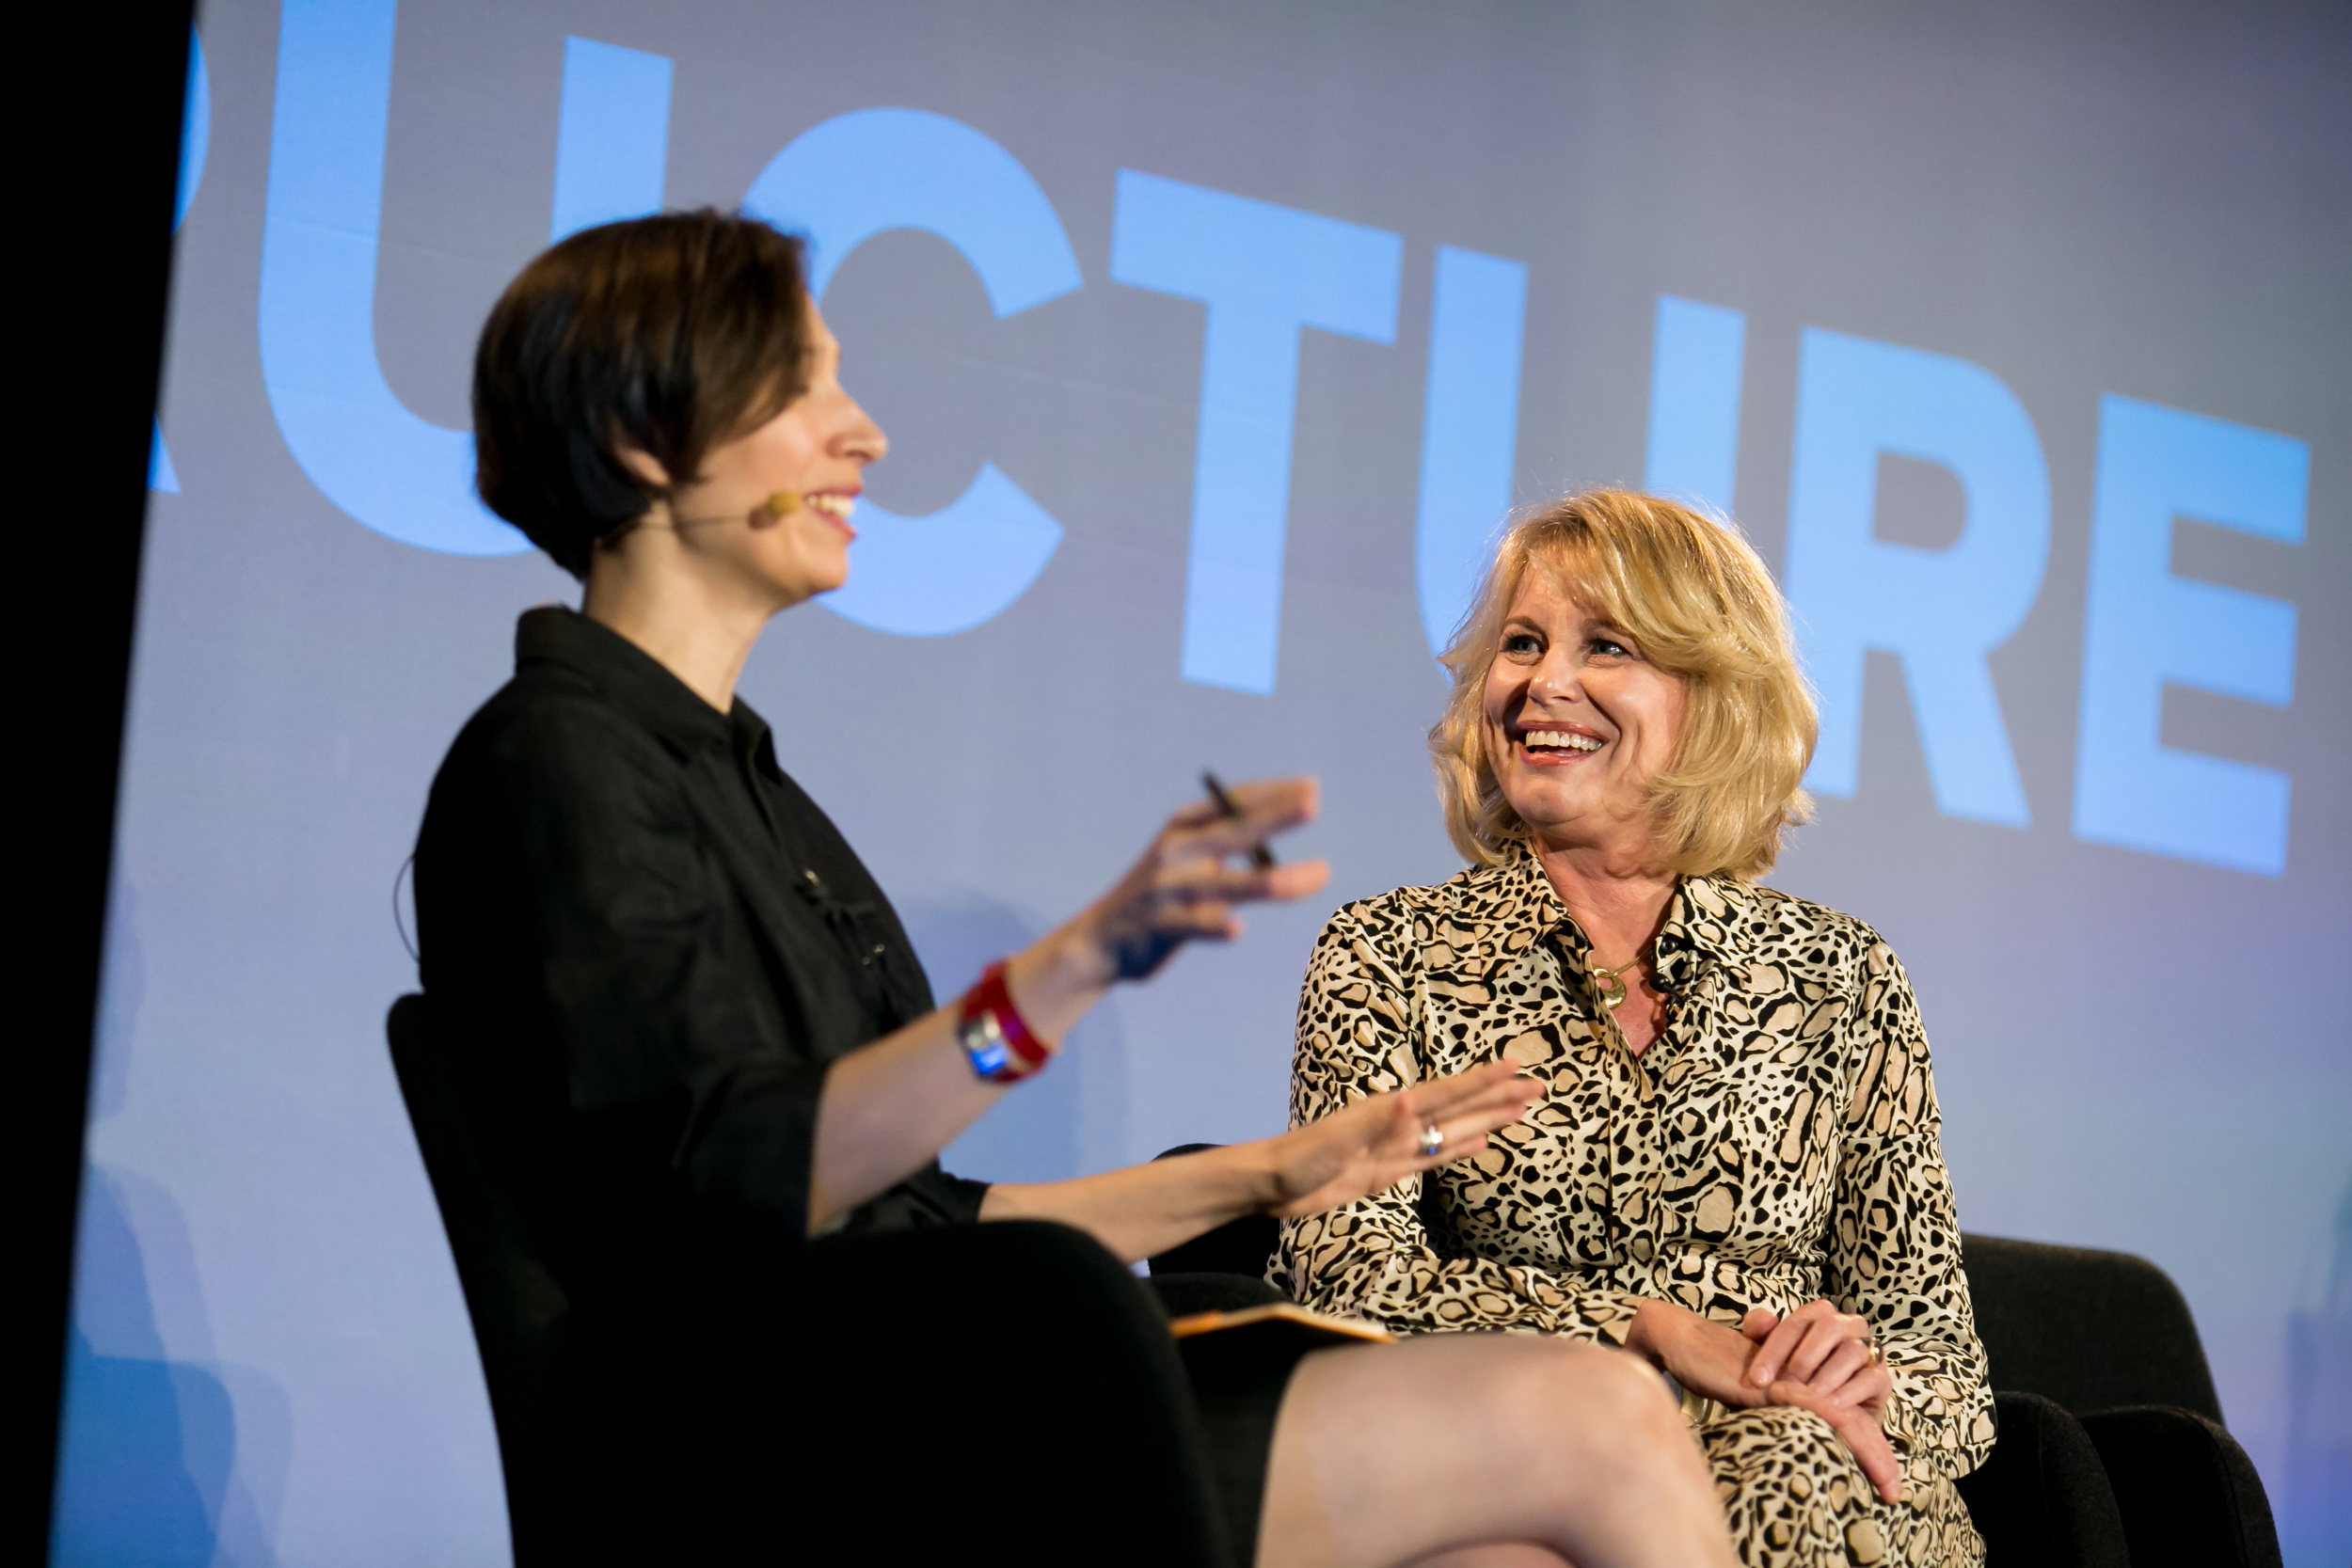 Fortune's Stacey Higginbotham (left) and Intel's Diane Bryant (right) onstage at the Structure 2015 event in San Francisco.